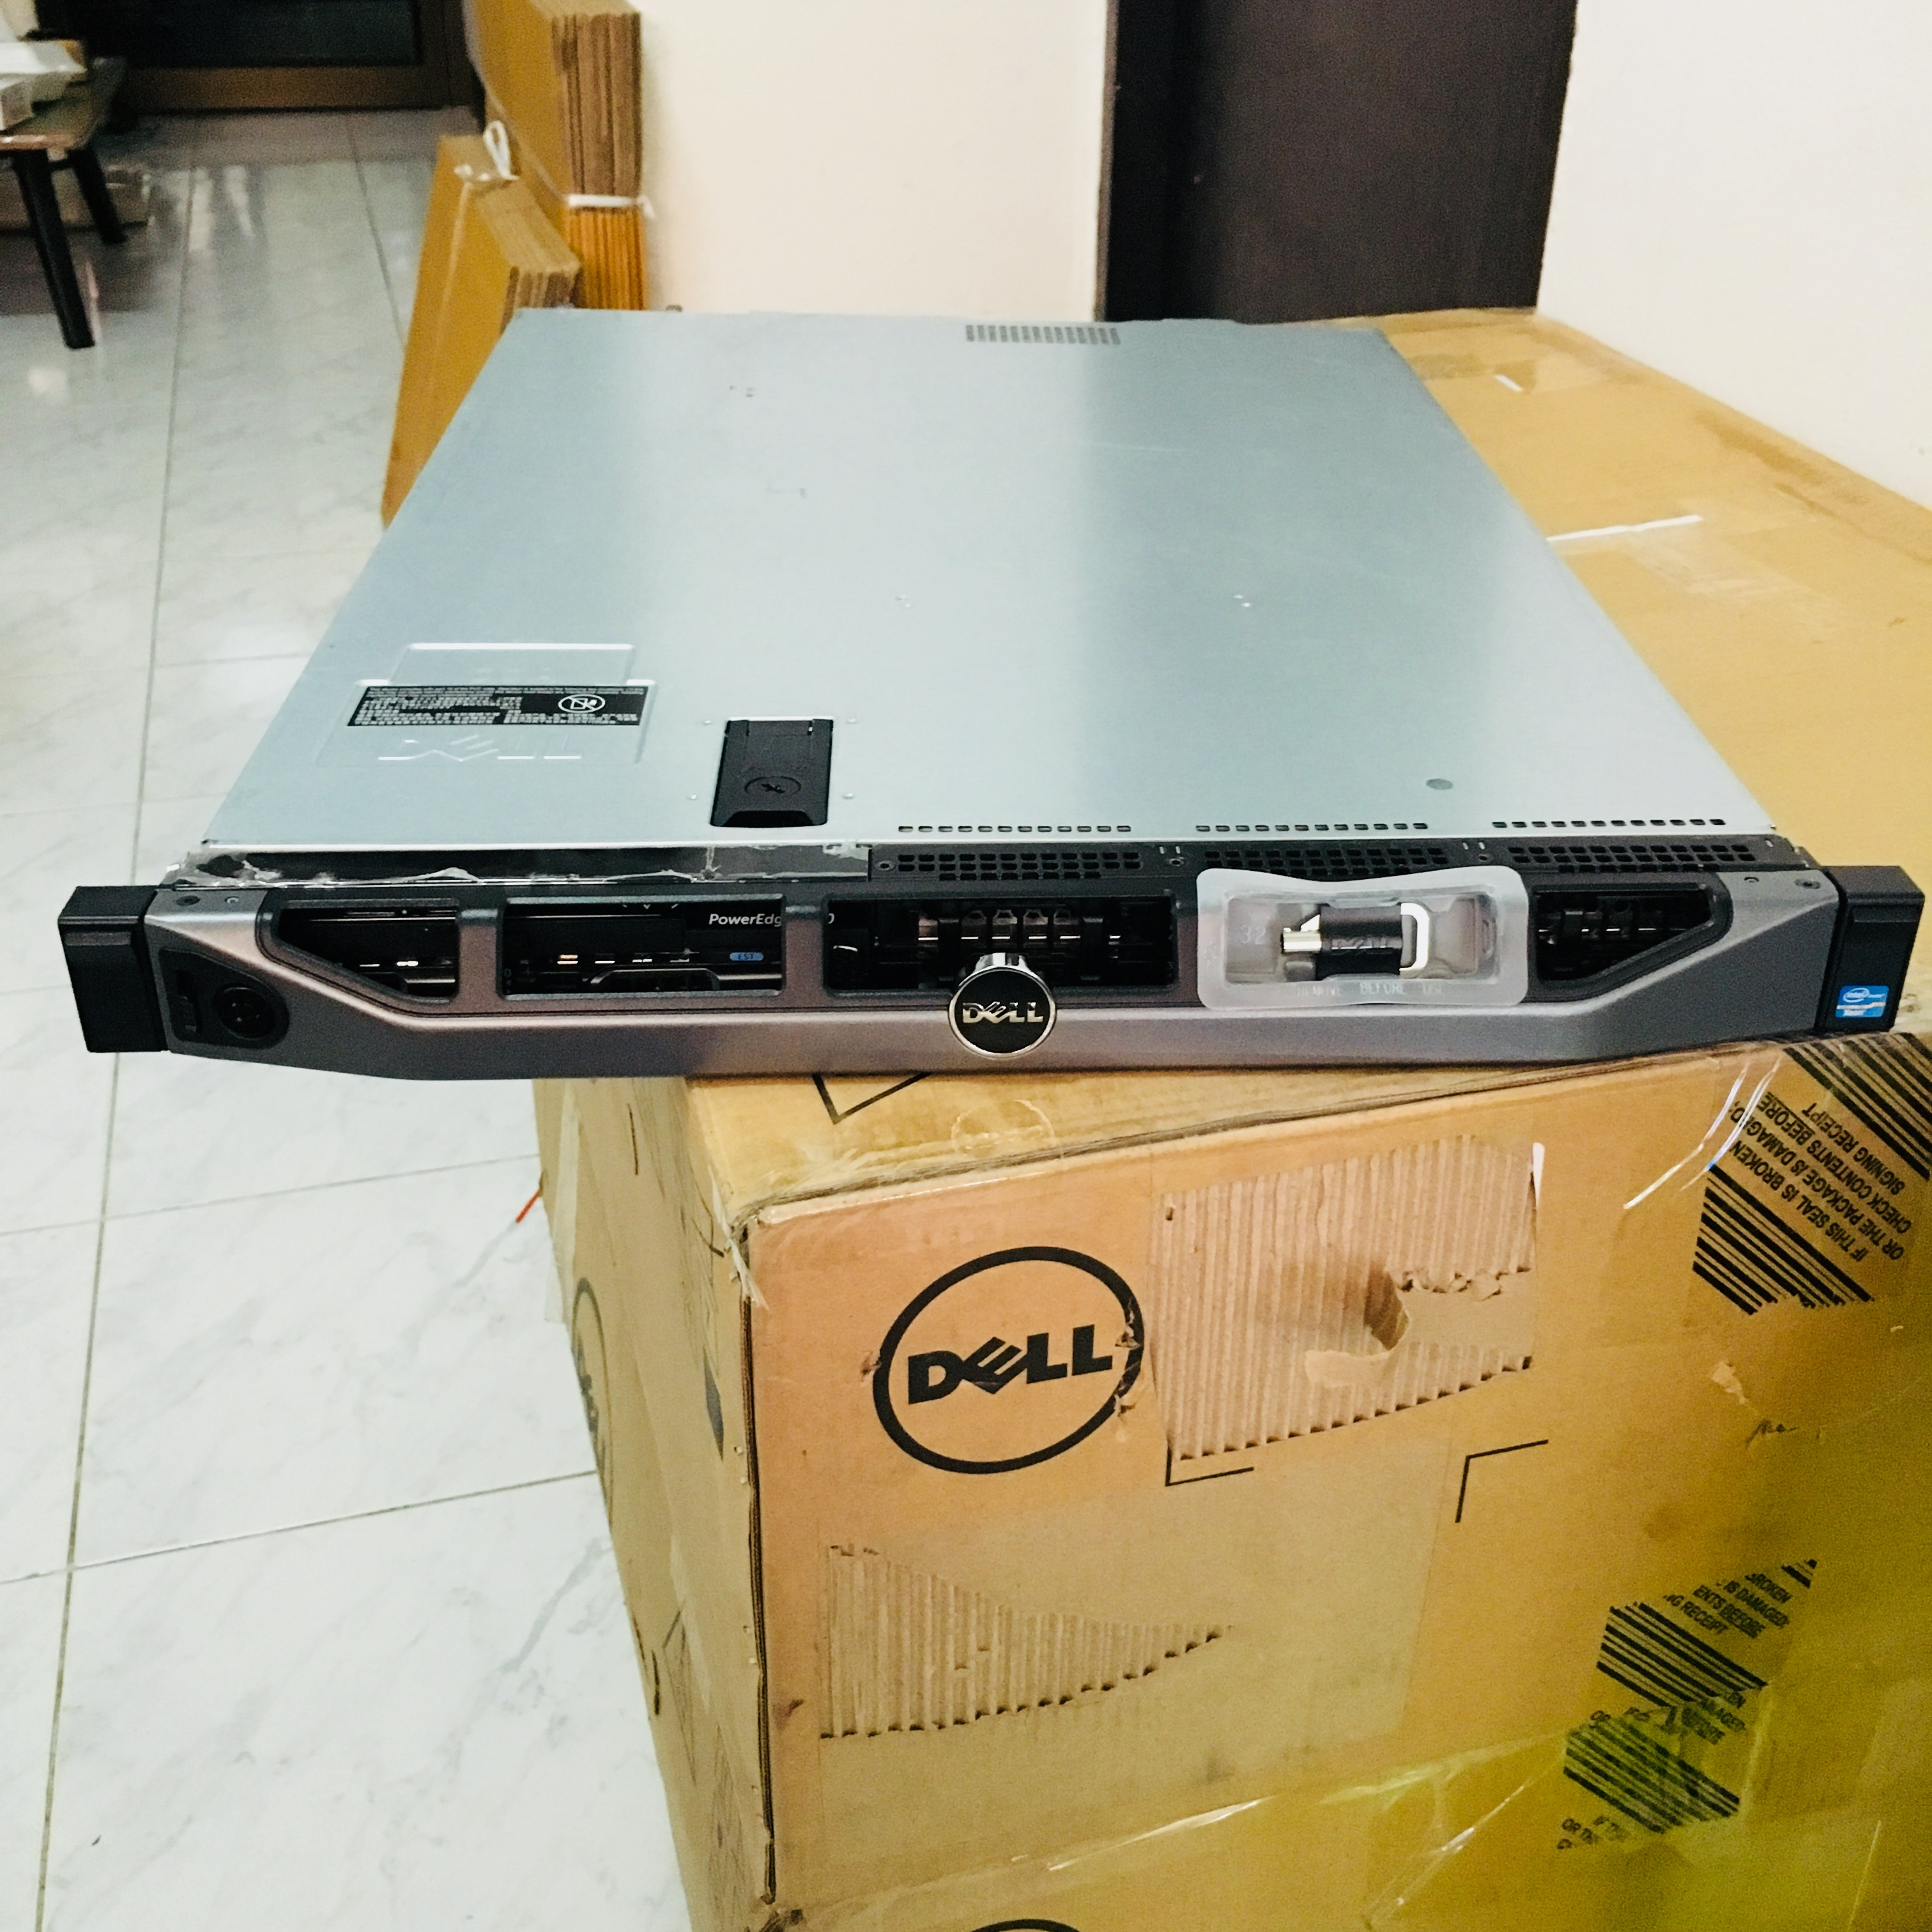 Dell Poweredge R320 Firmware Update